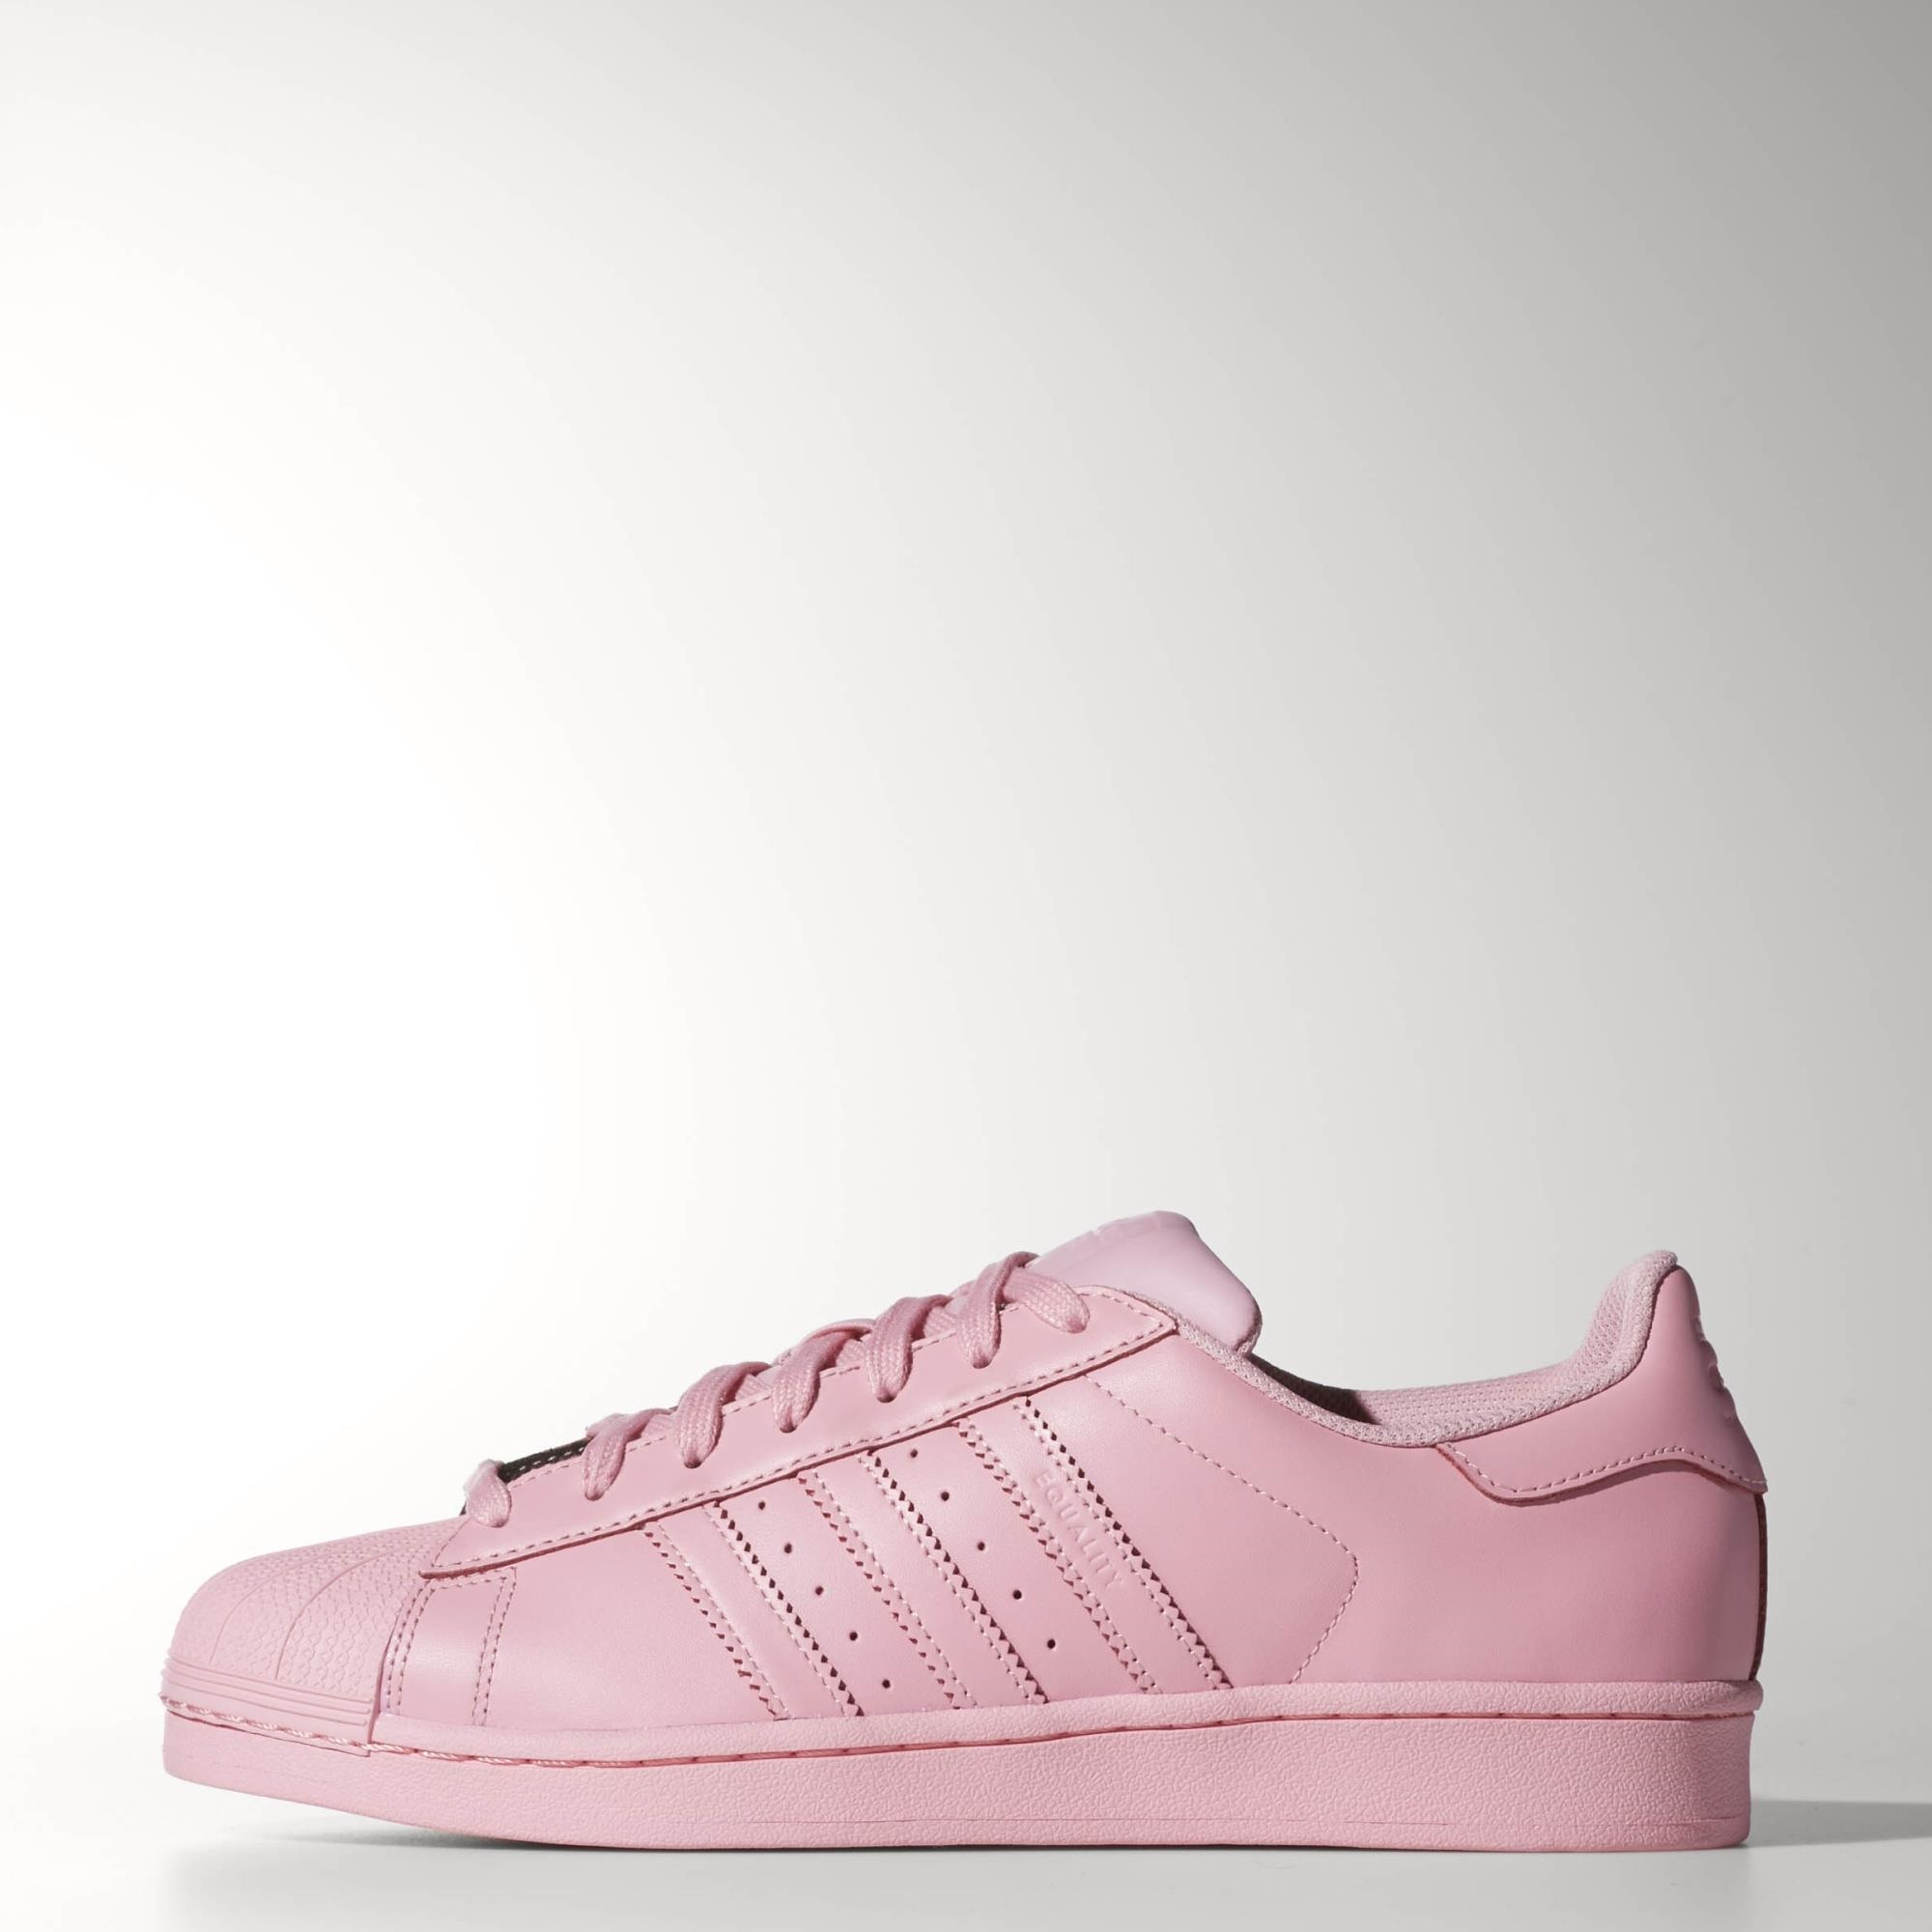 adidas Superstar Supercolor Shoes - Pink | adidas US